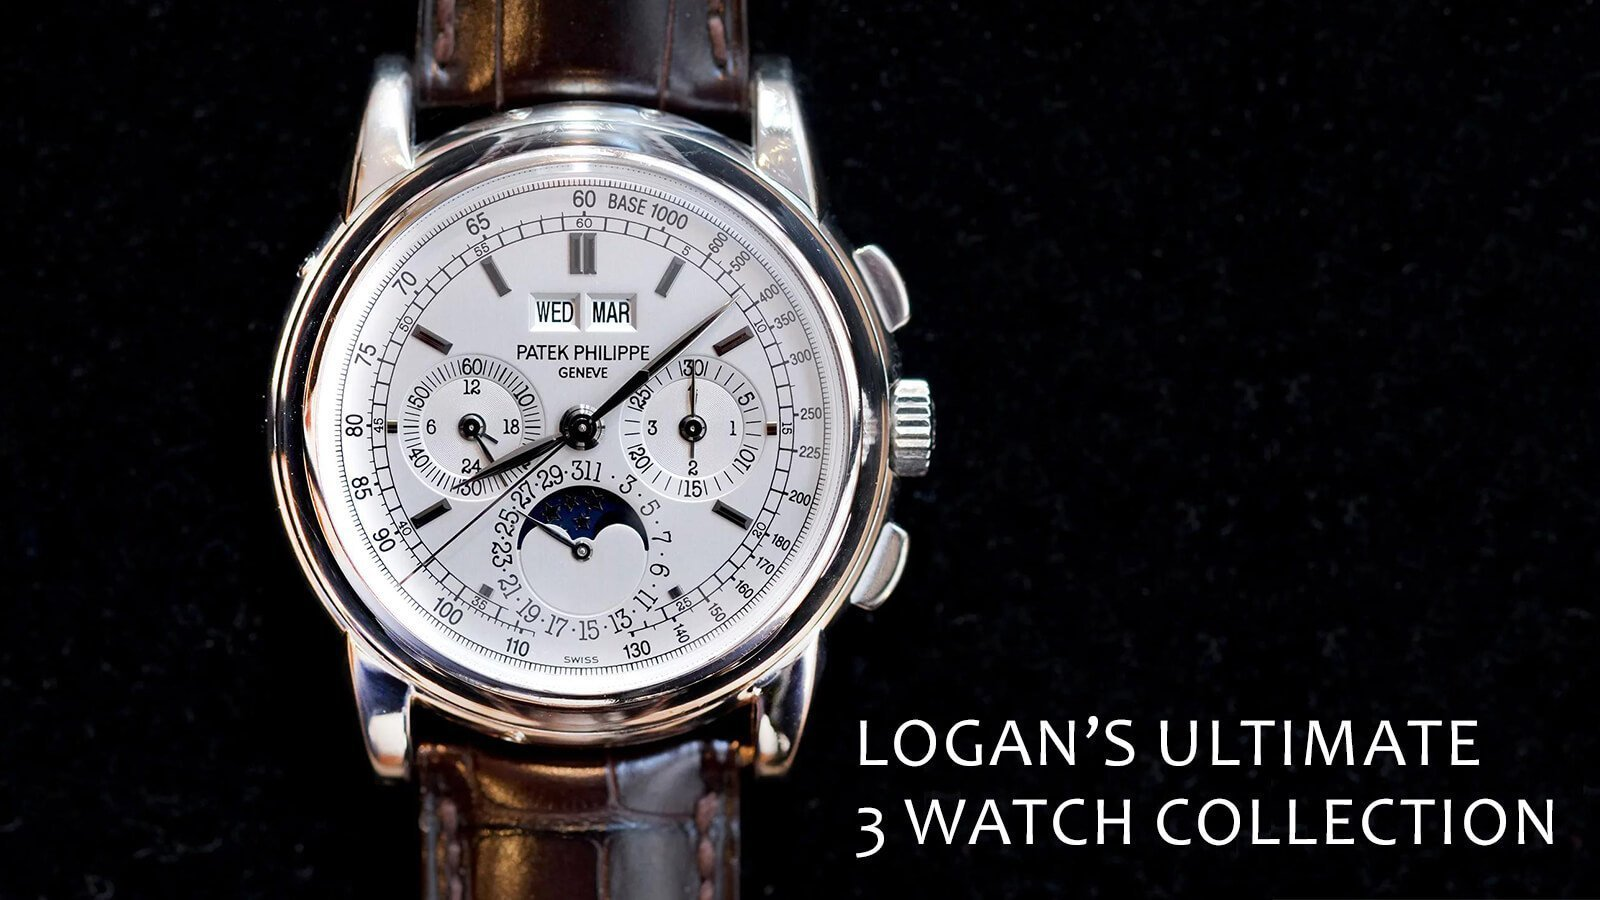 Watch 101: Logan's Ultimate 3 Watch Collection